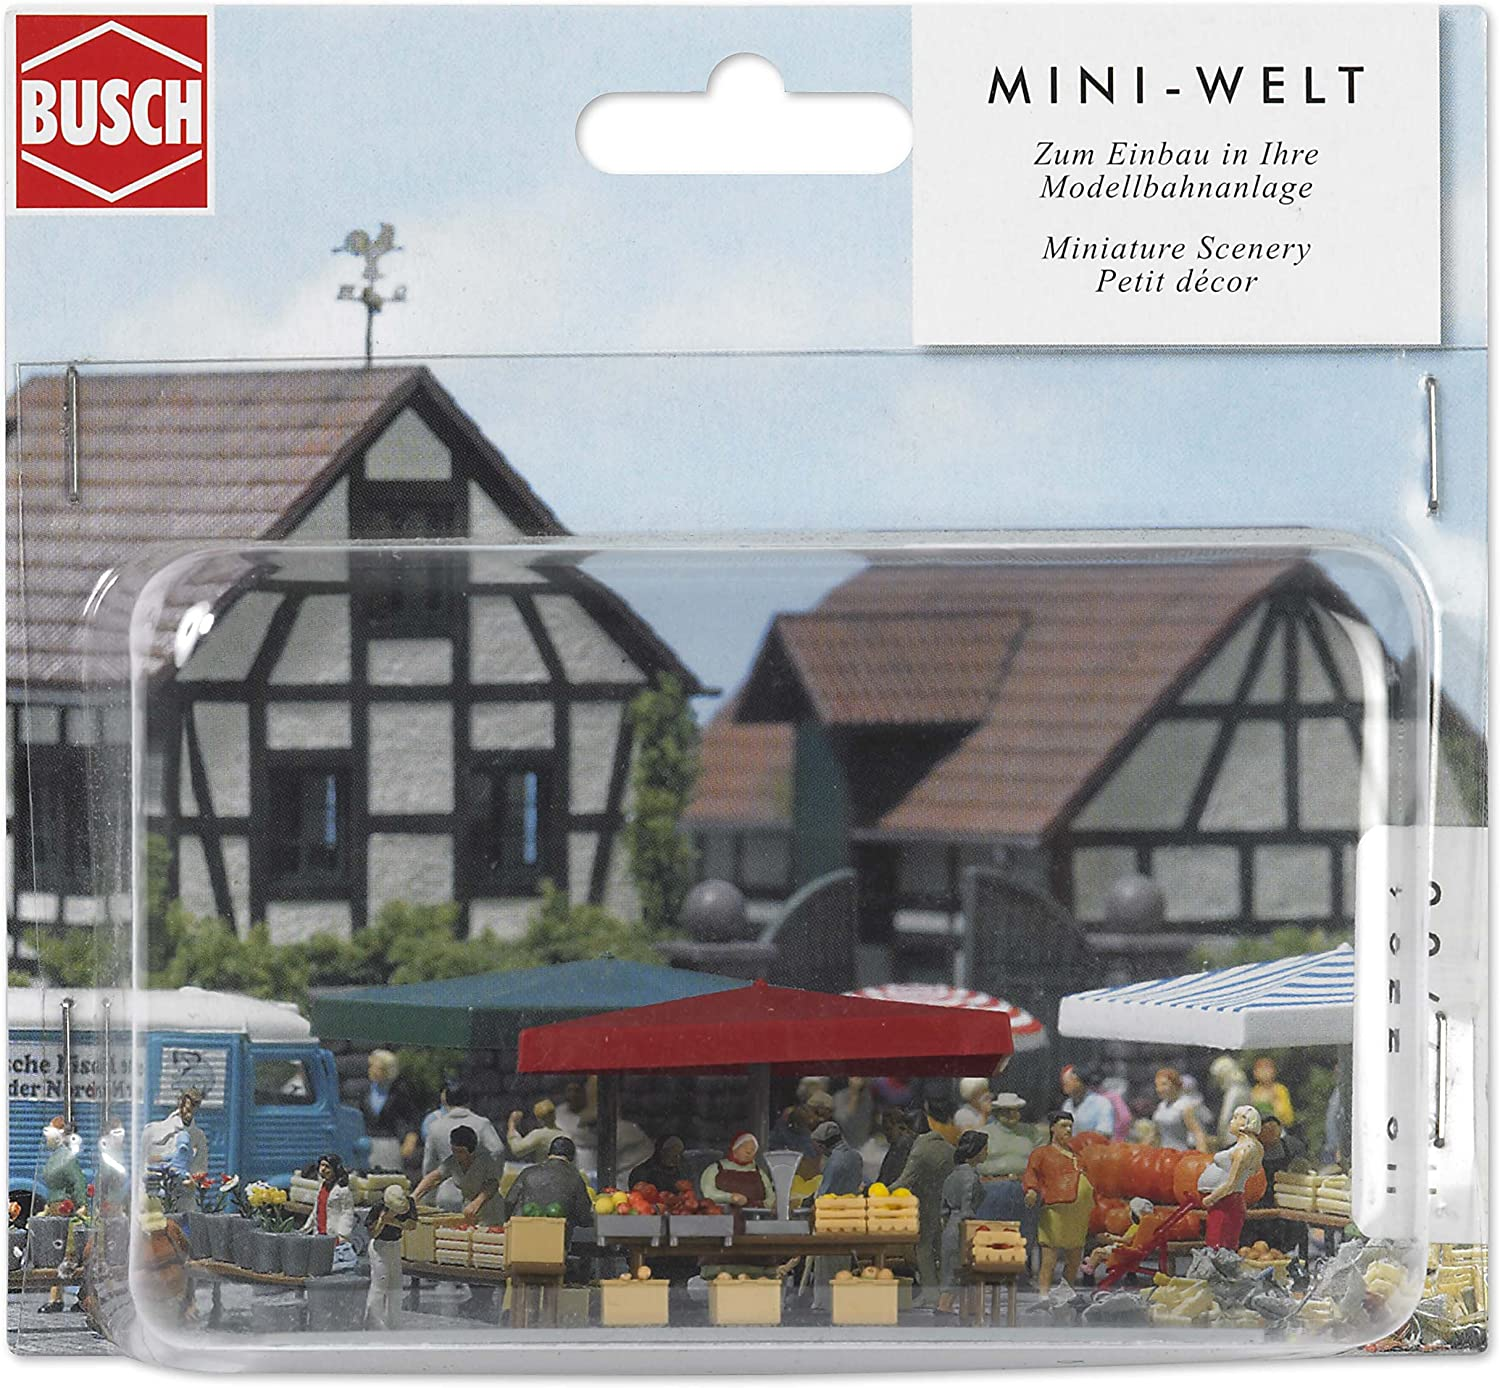 Busch 7706 Fruit & Vegetable Stall HO Scale Scenery Kit